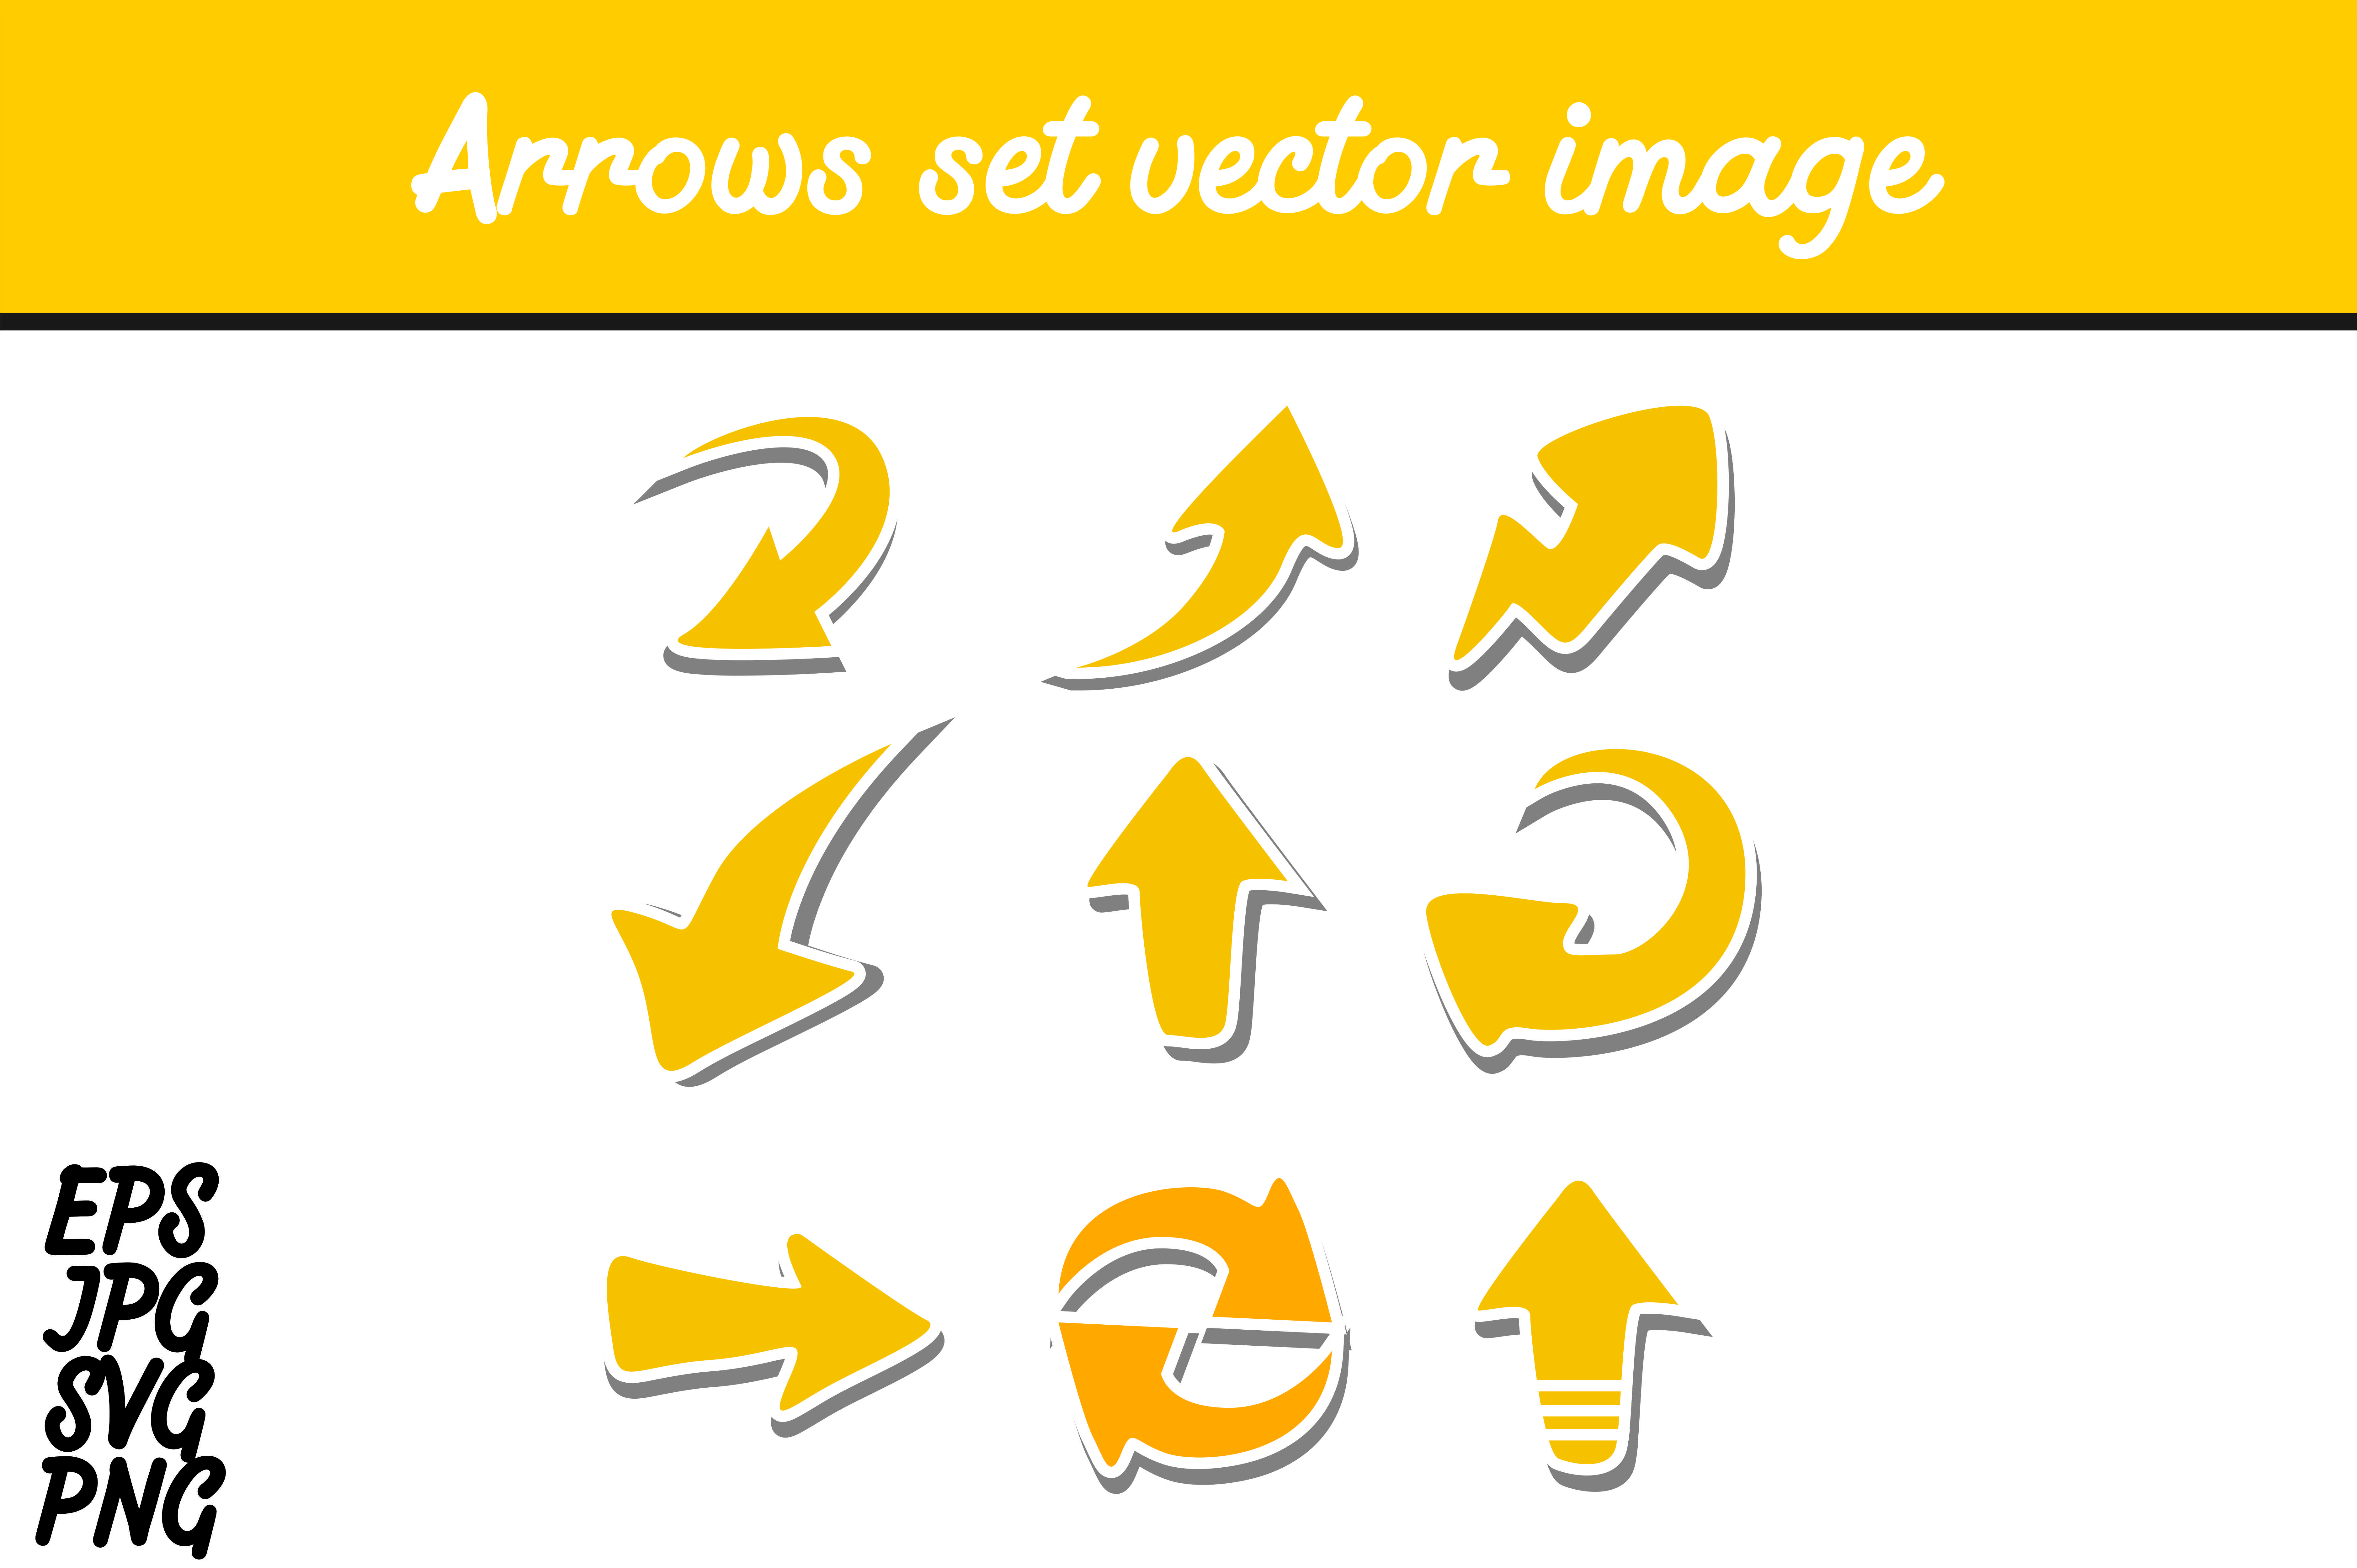 Download Free Bundle Arrow Set Vector Image Graphic By Arief Sapta Adjie for Cricut Explore, Silhouette and other cutting machines.